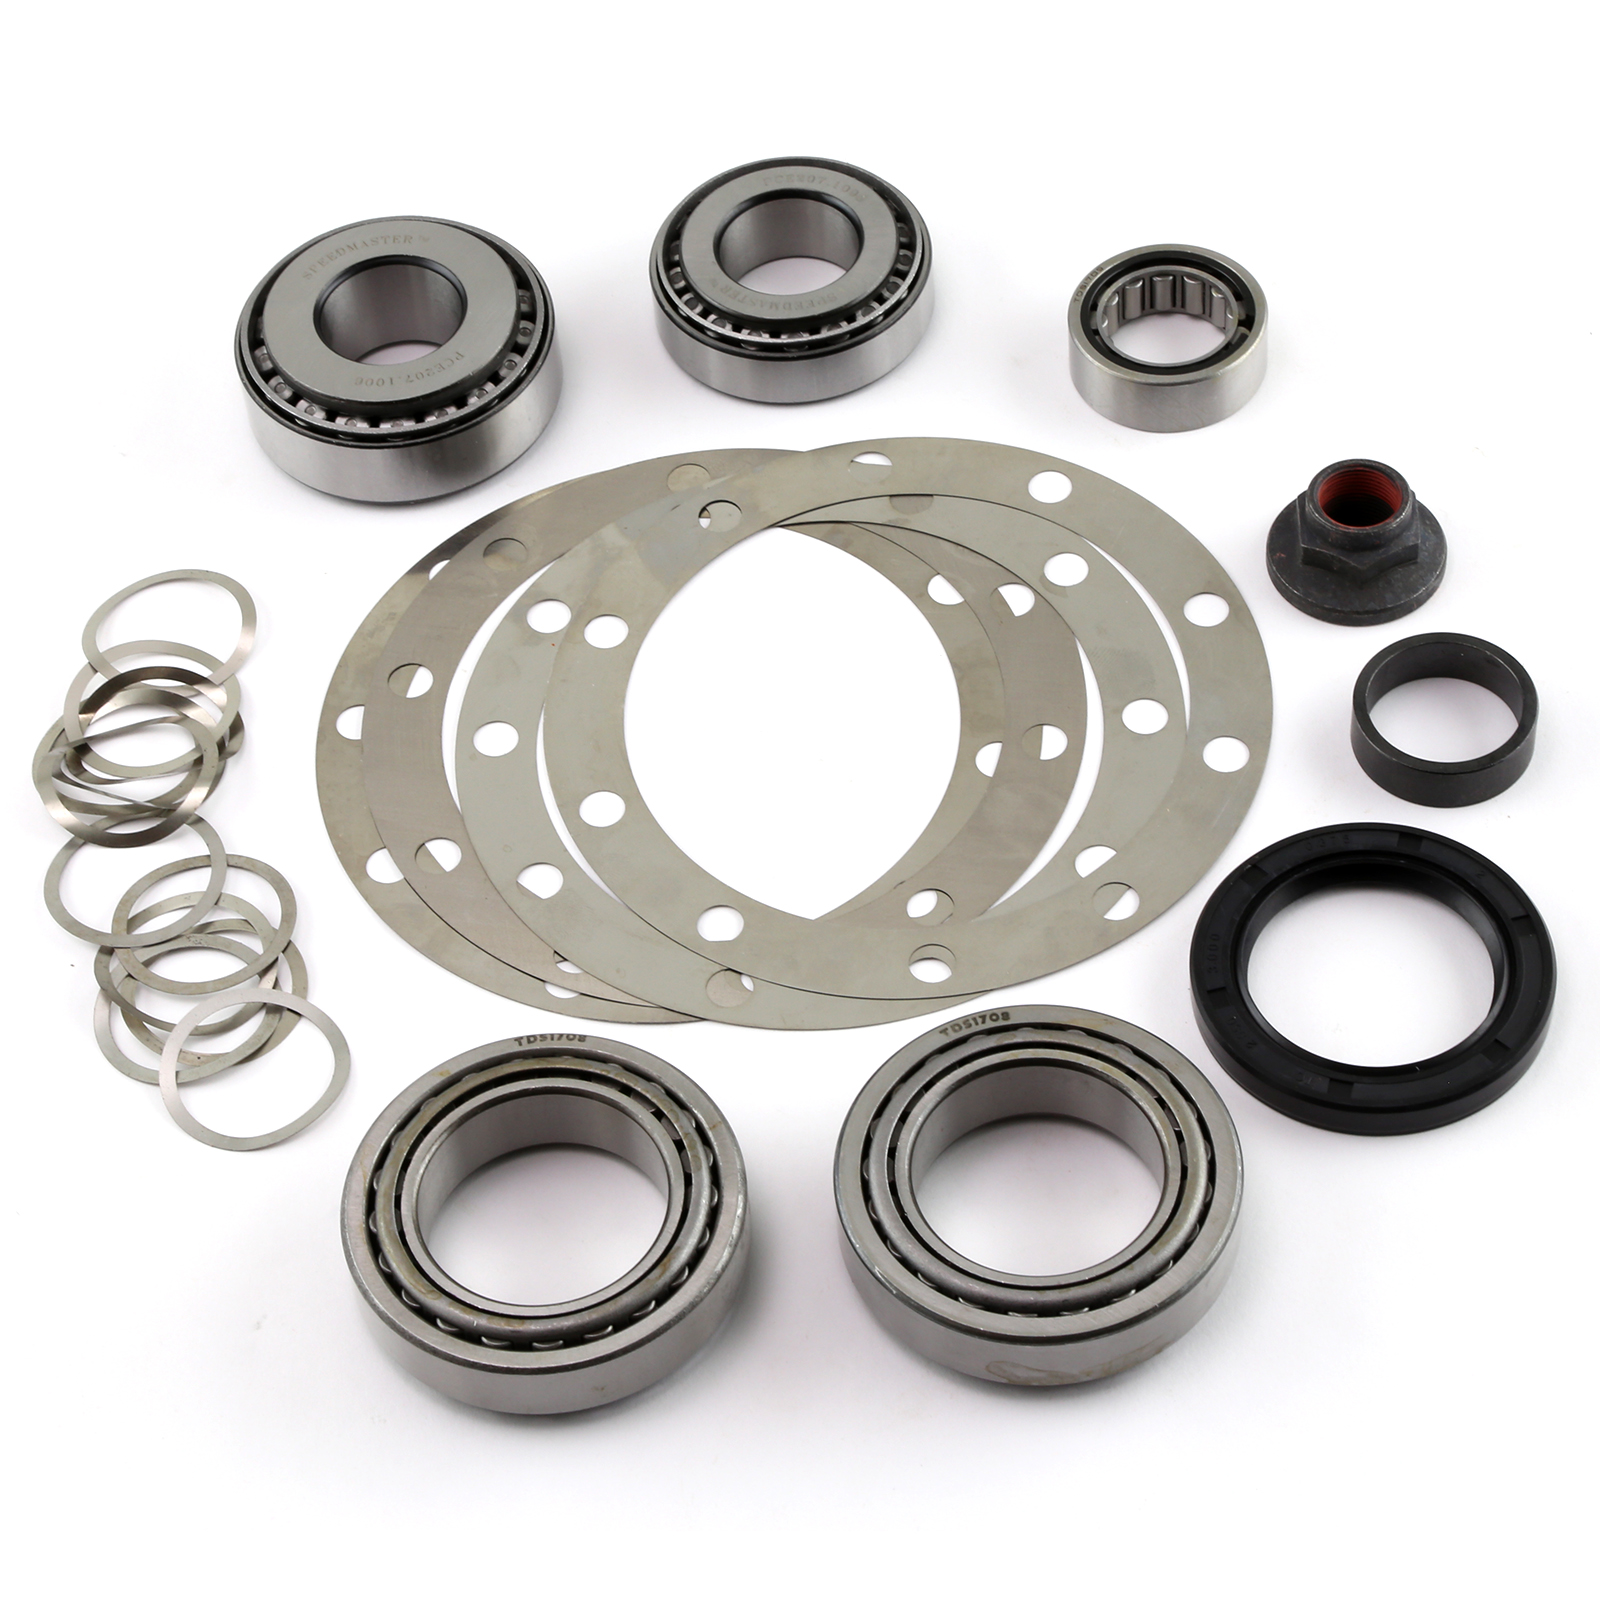 """Speedmaster® PCE593.1001 9"""" Ford Rear End Ring and Pinion Bearing Installation Rebuild Kit 3.06"""" Carrier"""